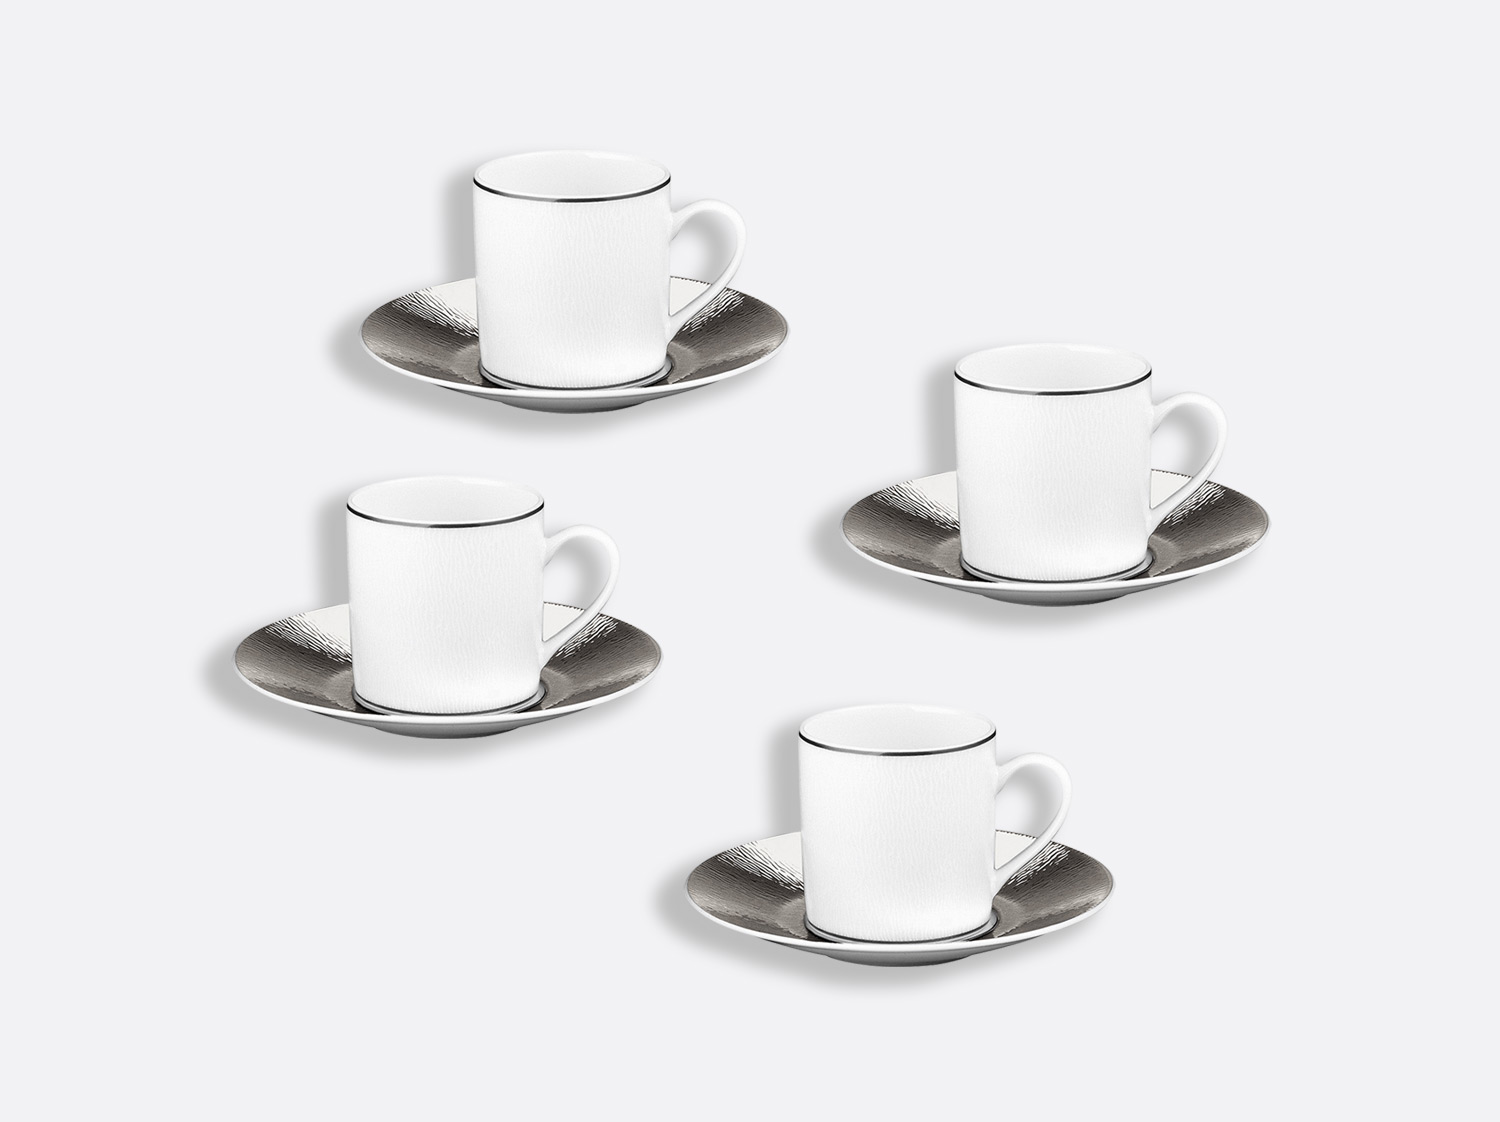 China Espresso cup and saucer gift box - 2.8 Oz - Set of 4 of the collection Dune | Bernardaud